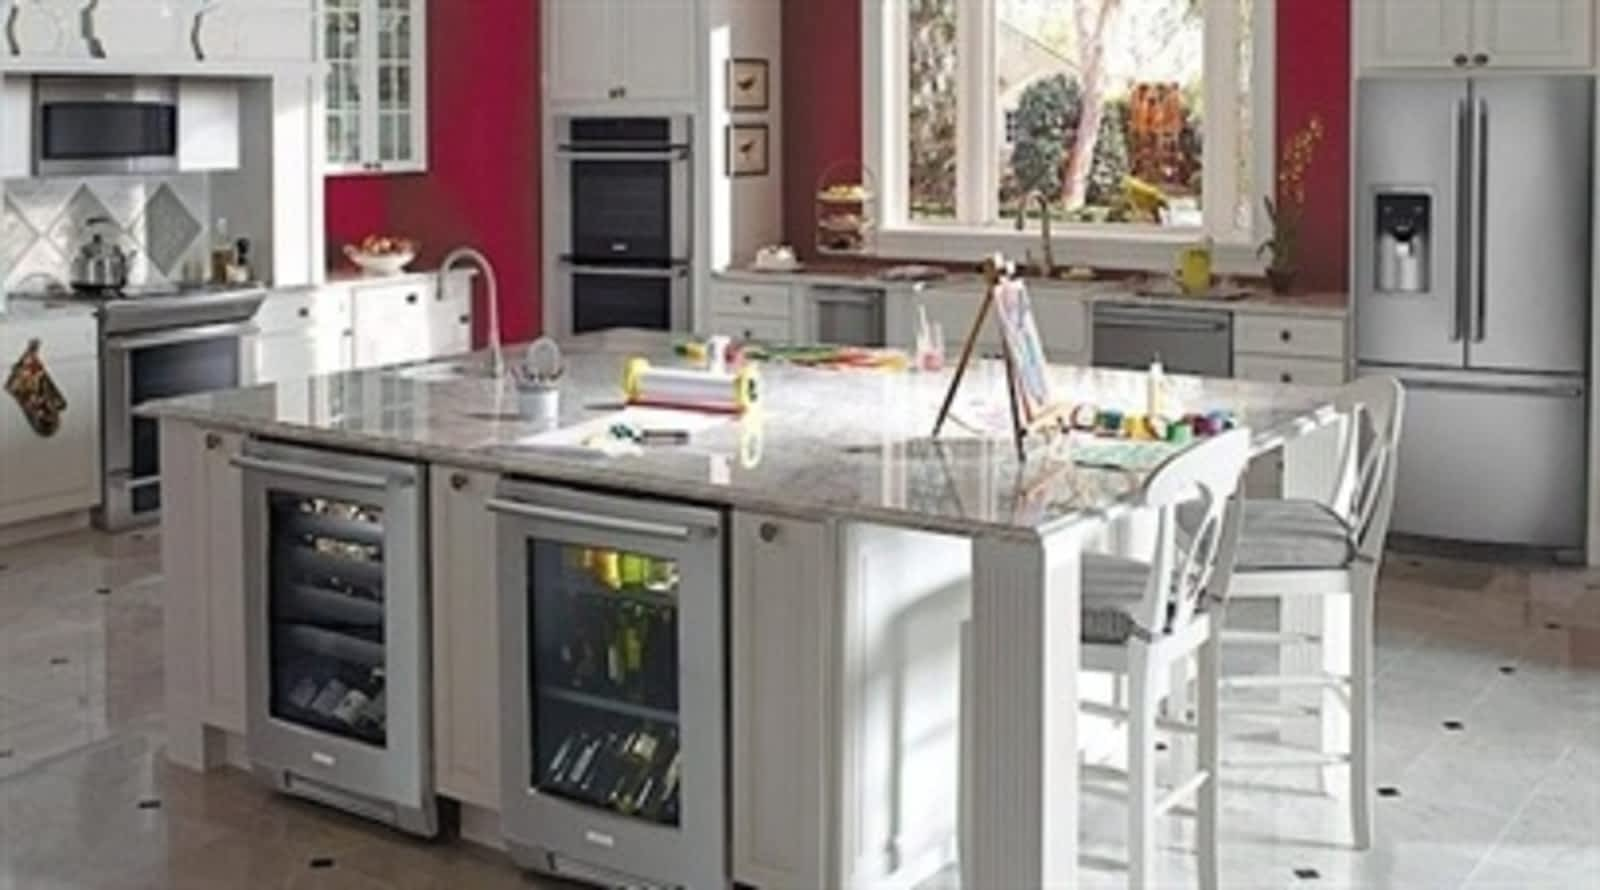 Appliance Scratch & Dent Outlet - Opening Hours - 4-407 Gage Ave ...